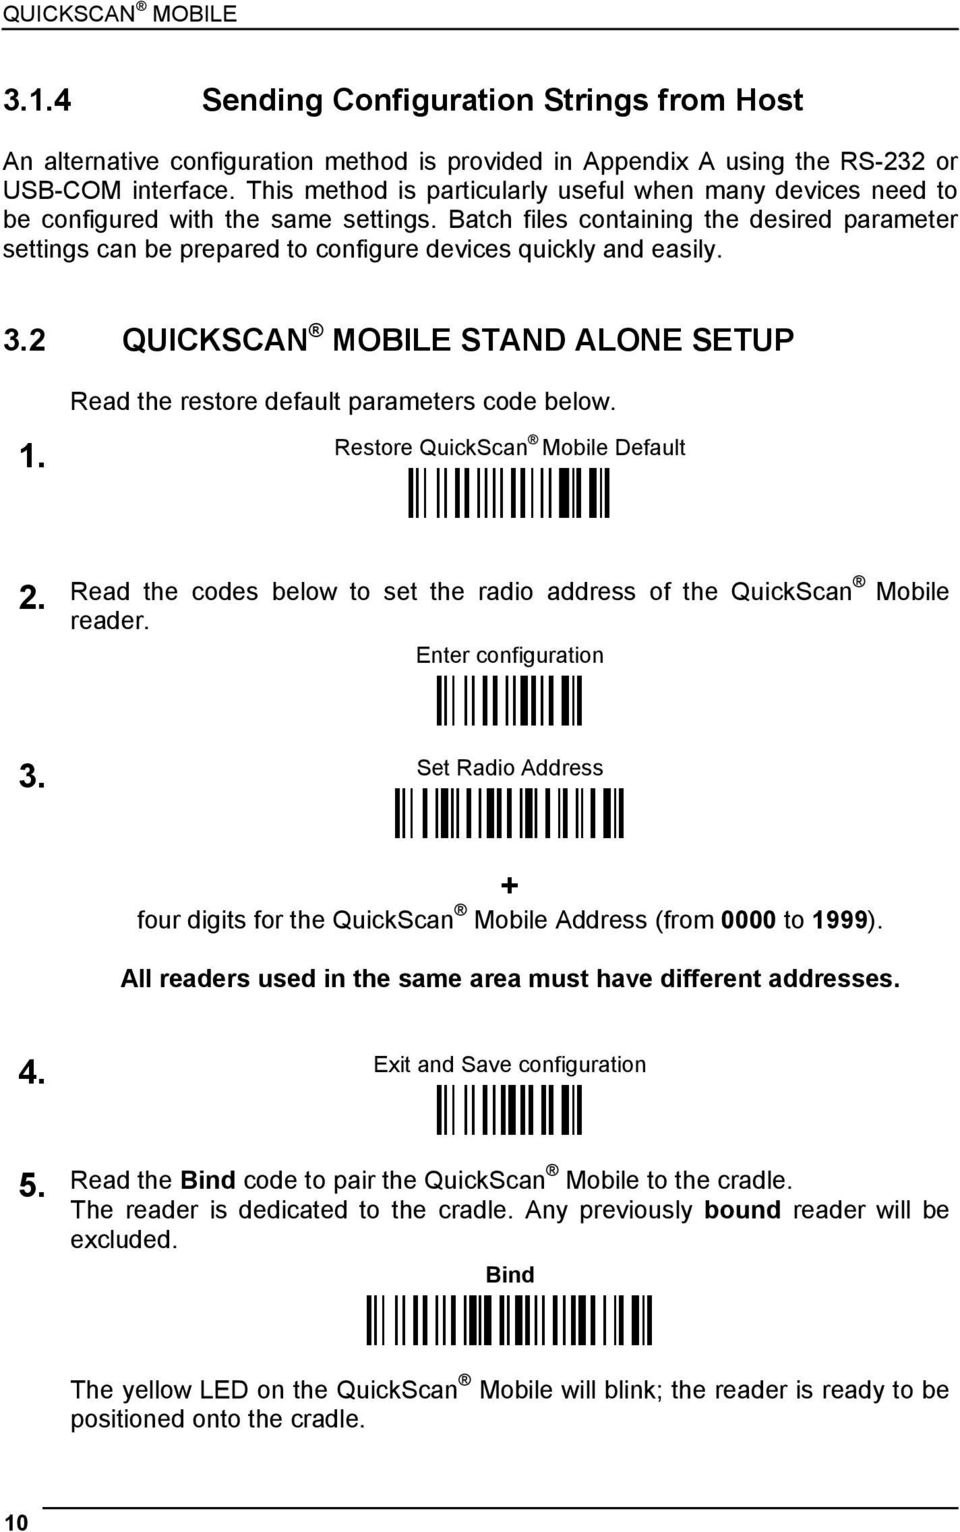 QuickScan Mobile  Reference Manual - PDF